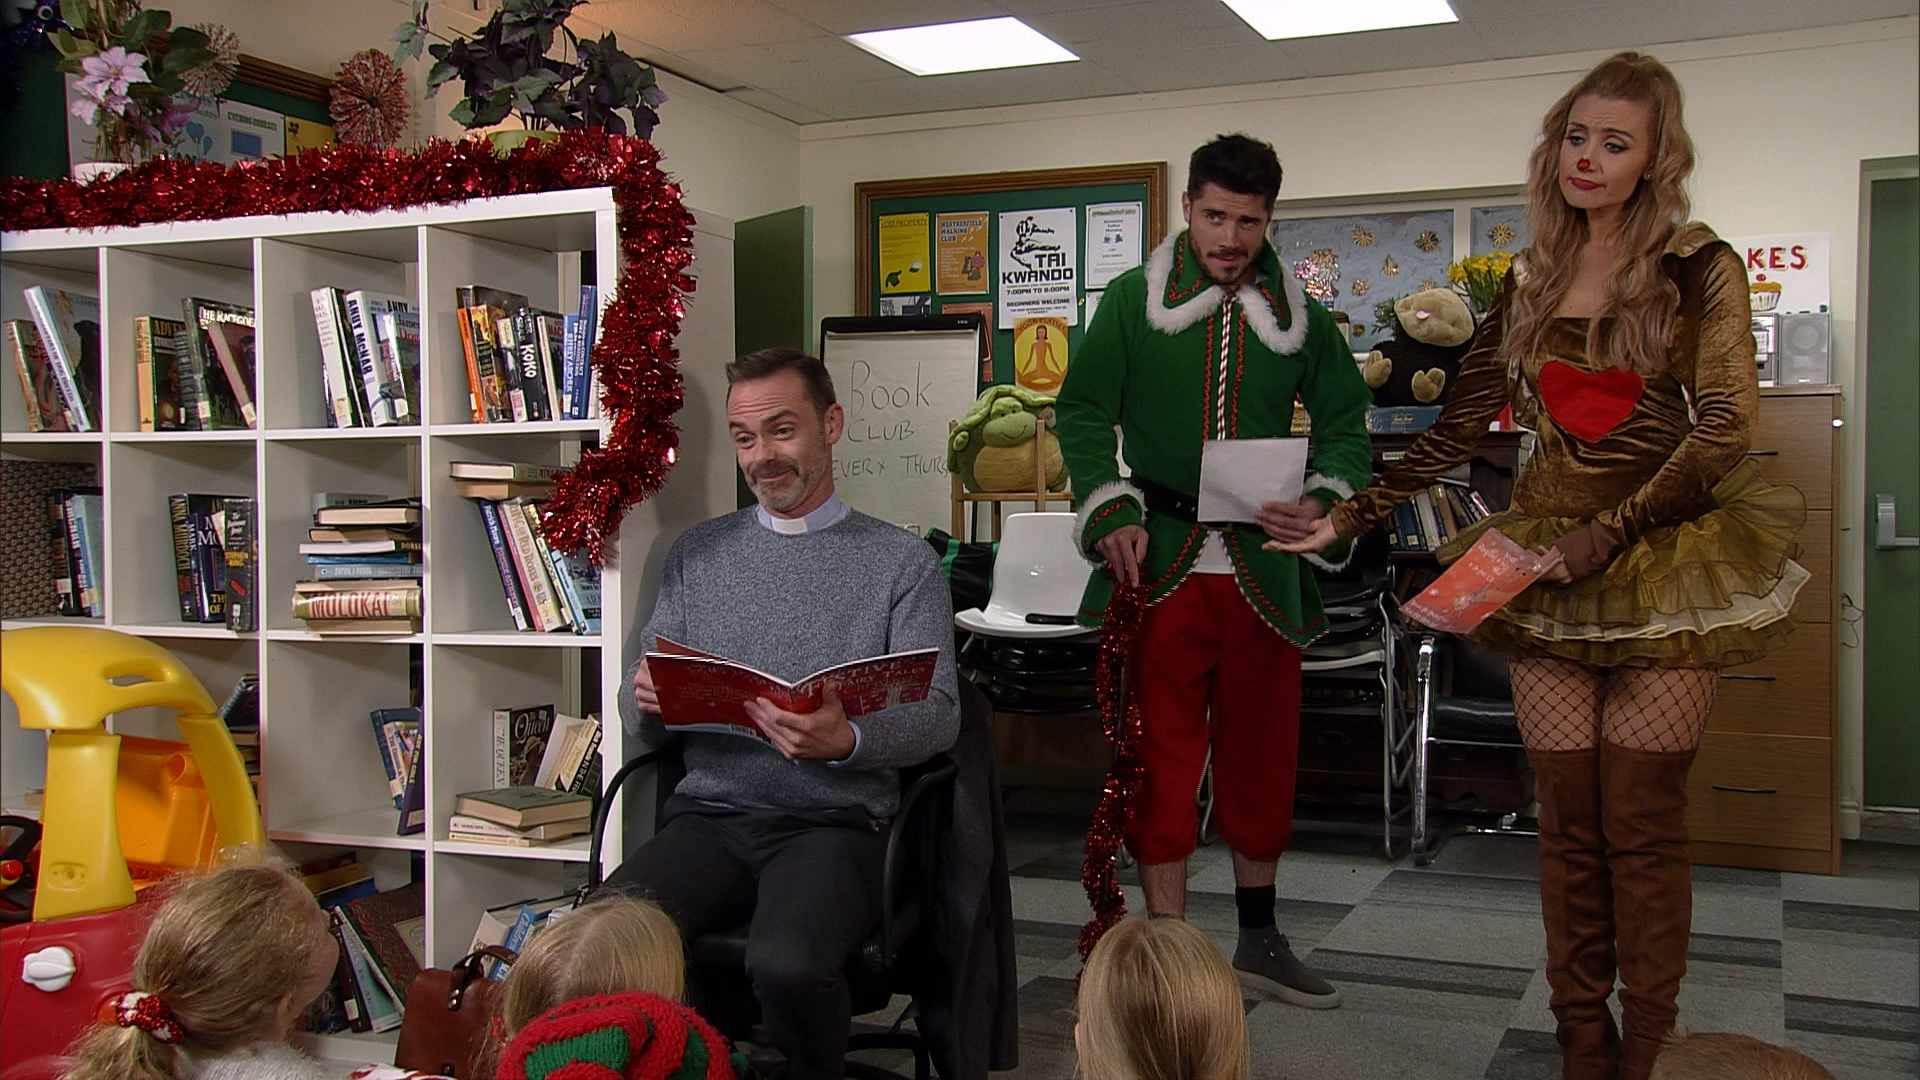 CORRIE 9330 WEDS 20TH DEC 1930 PREVIEW CLIP